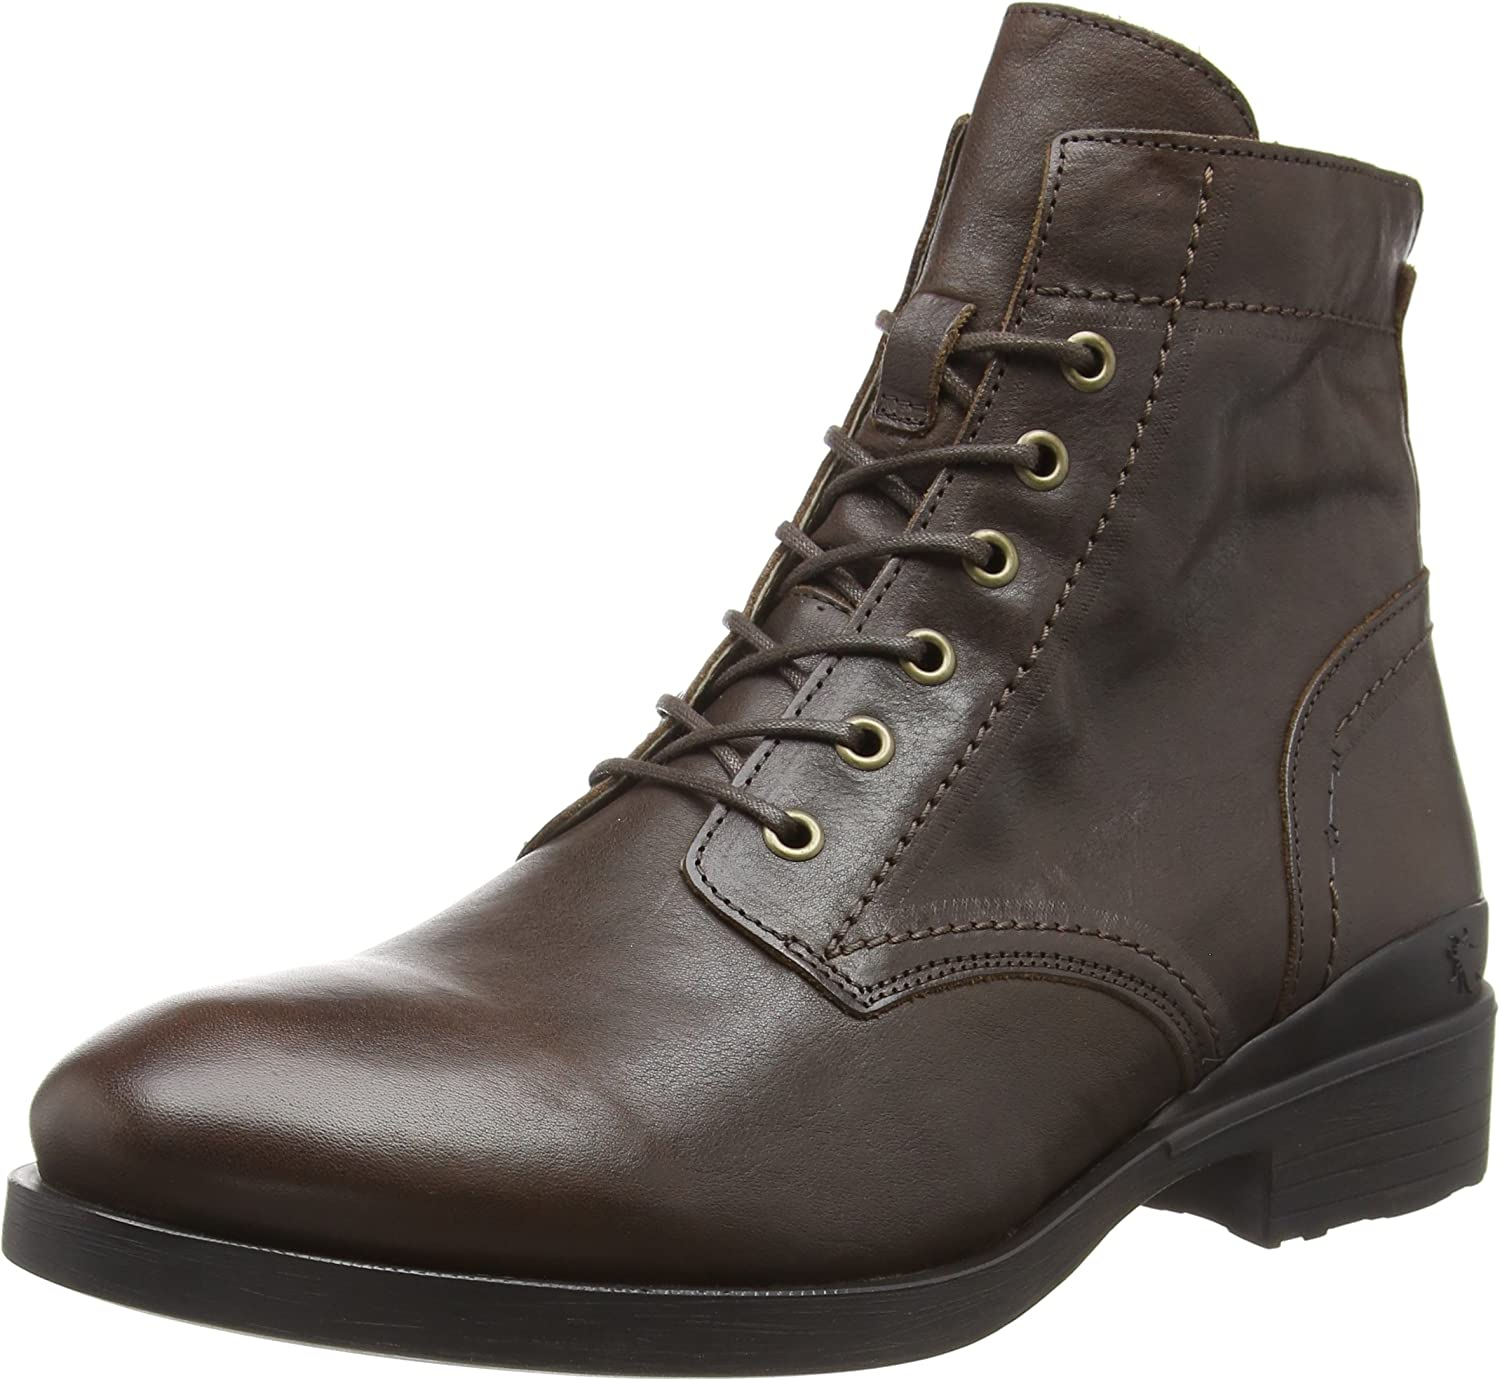 TALLA 43 EU. Fly London Marc343fly, Botas Clasicas para Hombre